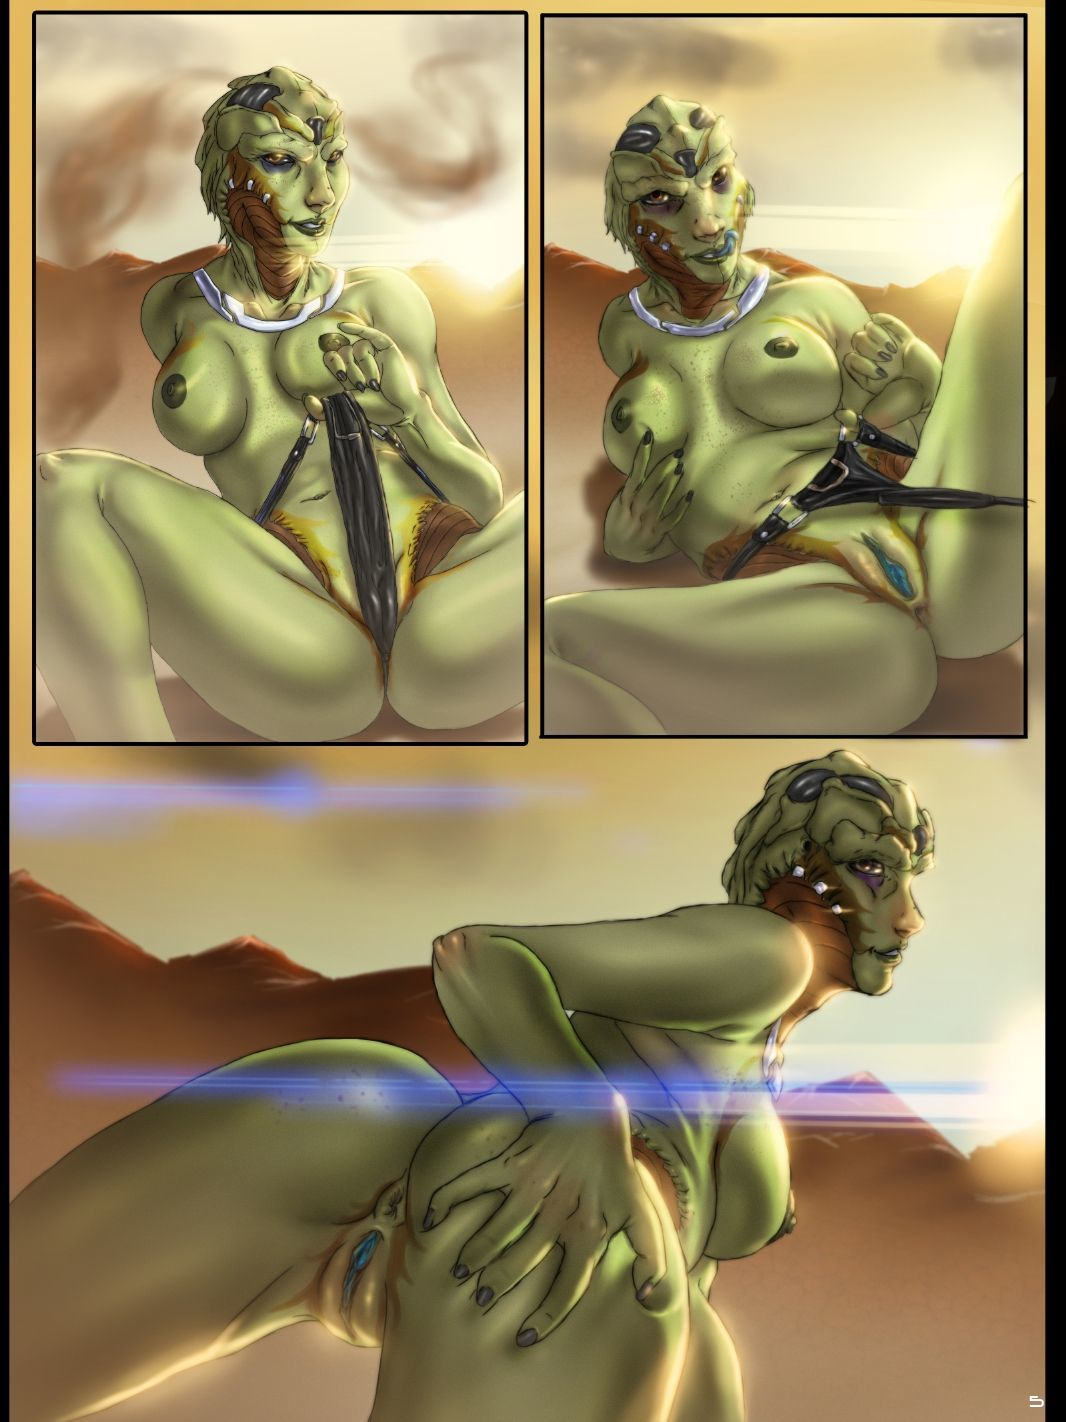 FORNAX_The_galaxys_finest_xenophilia_(Mass_Effect) comix_57892.jpg